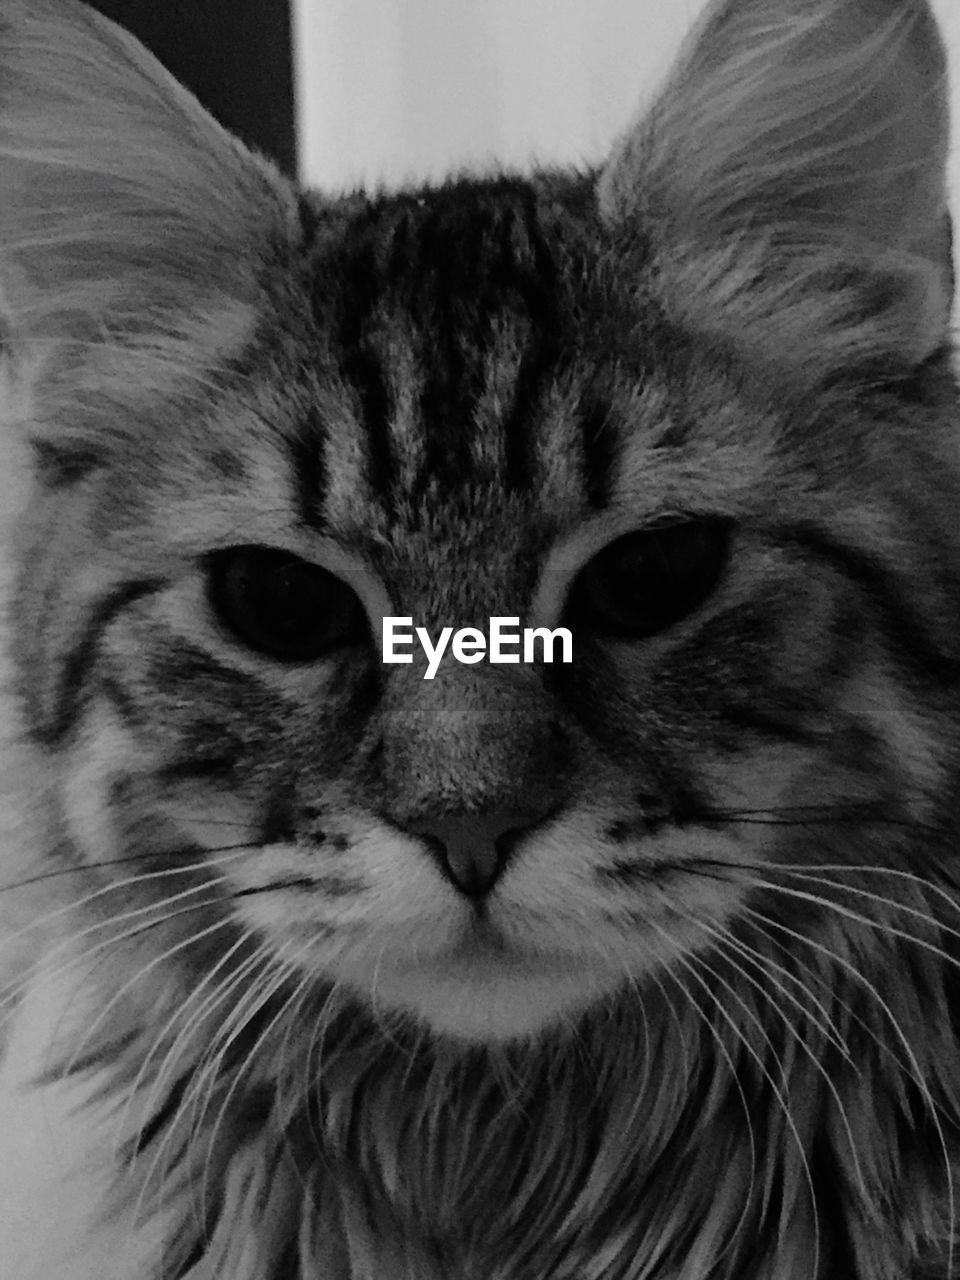 cat, one animal, mammal, pets, feline, domestic cat, domestic, domestic animals, close-up, whisker, vertebrate, portrait, indoors, no people, looking at camera, animal body part, animal eye, tabby